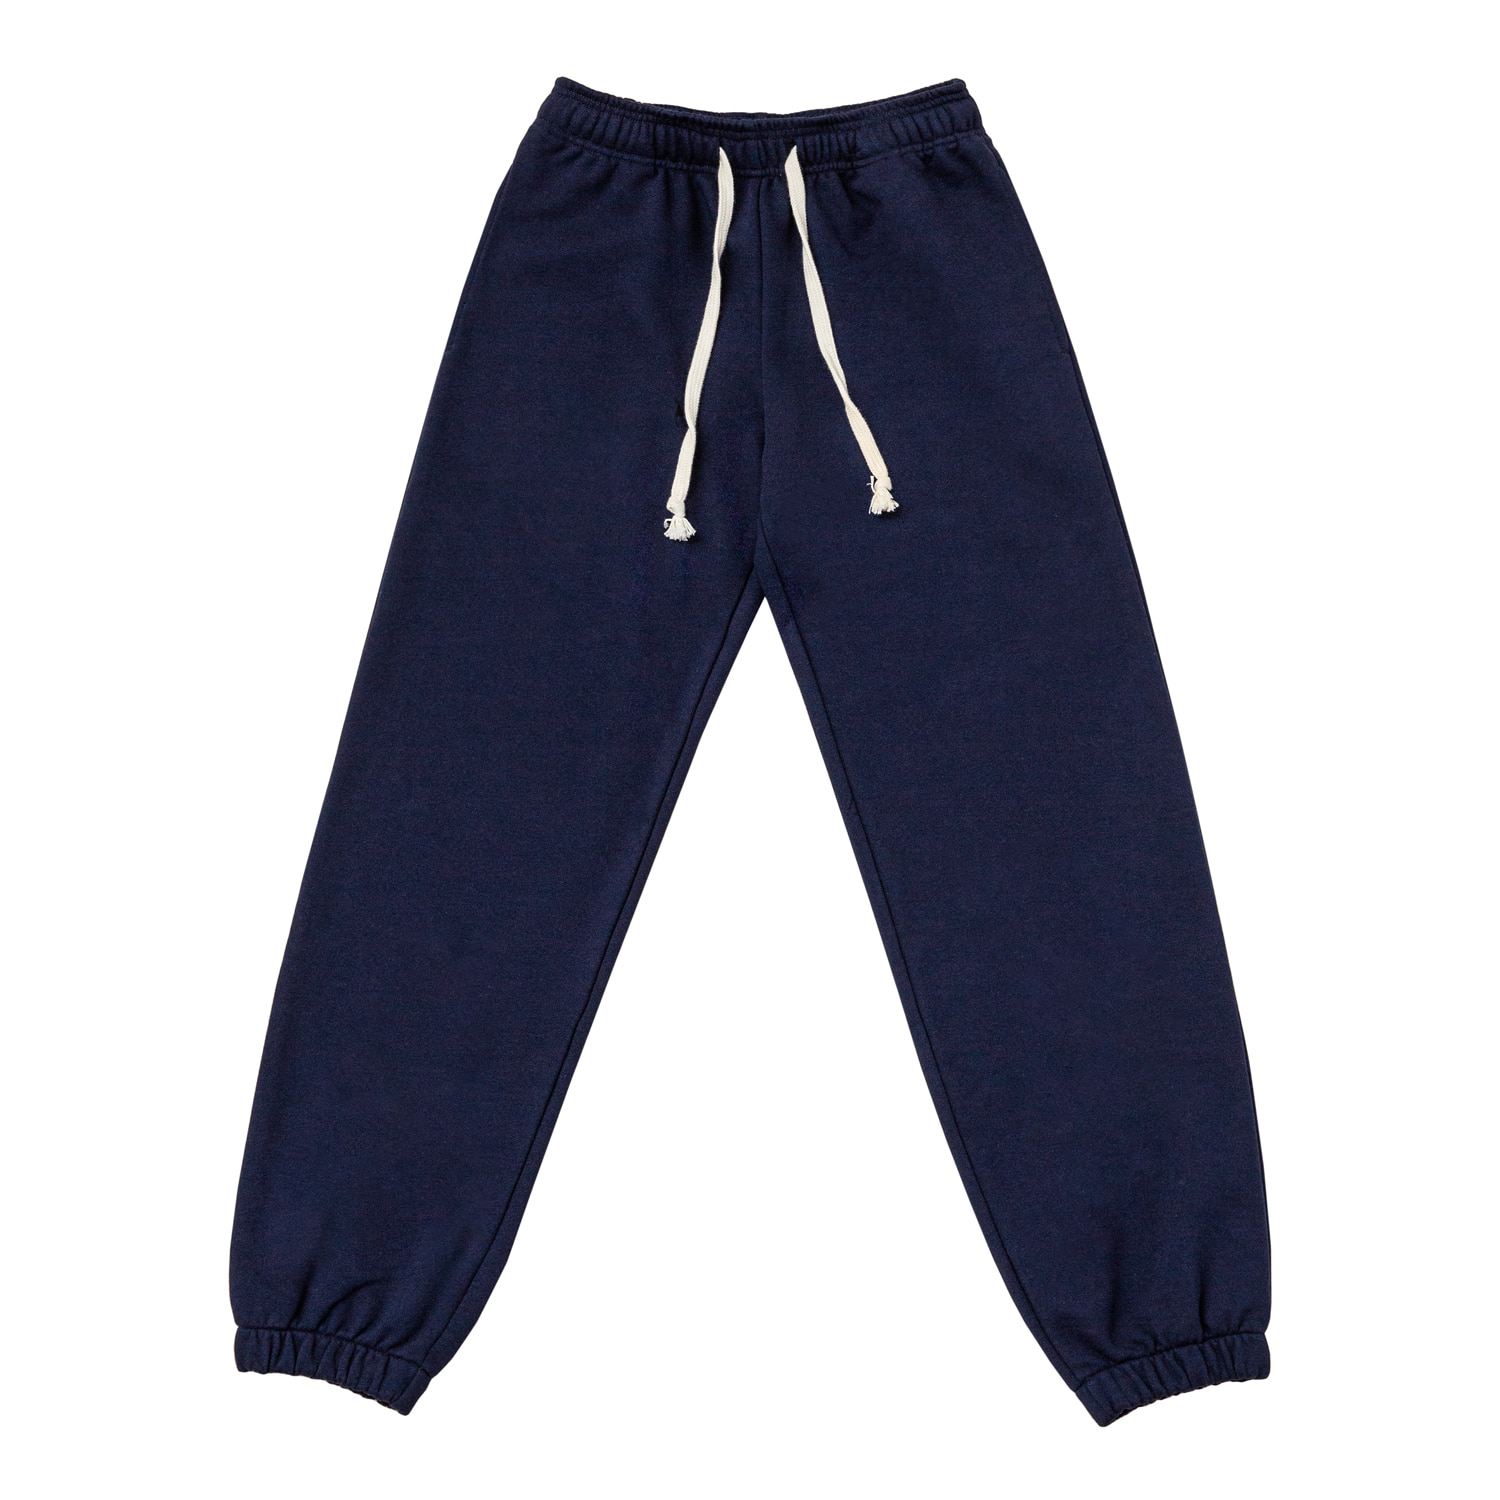 2nd RE) ORE COTTON 005 jogger PT Navy